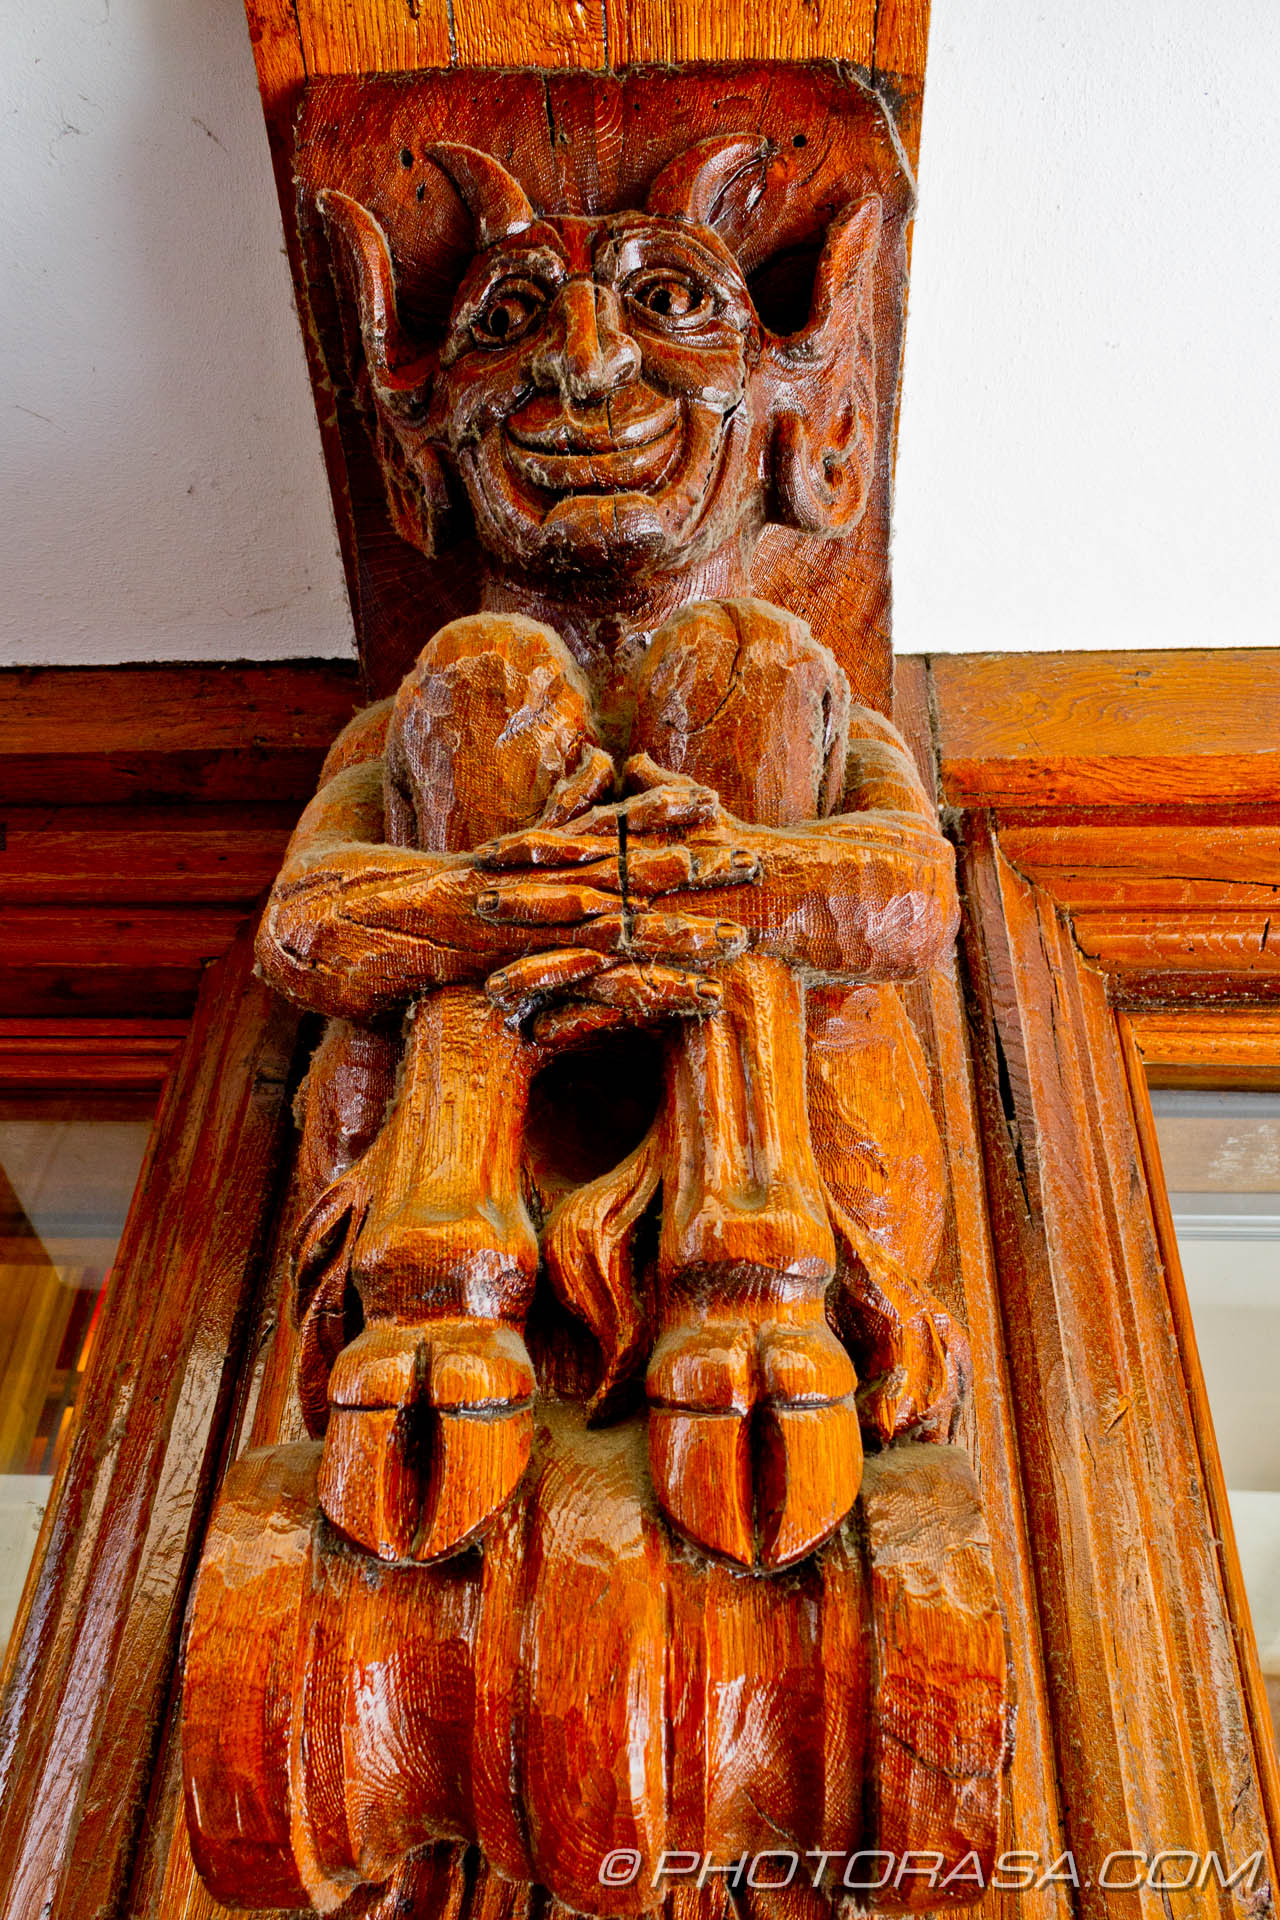 http://photorasa.com/canterbury-trip/smiling-satyr-carved-in-wooden-wall-post/